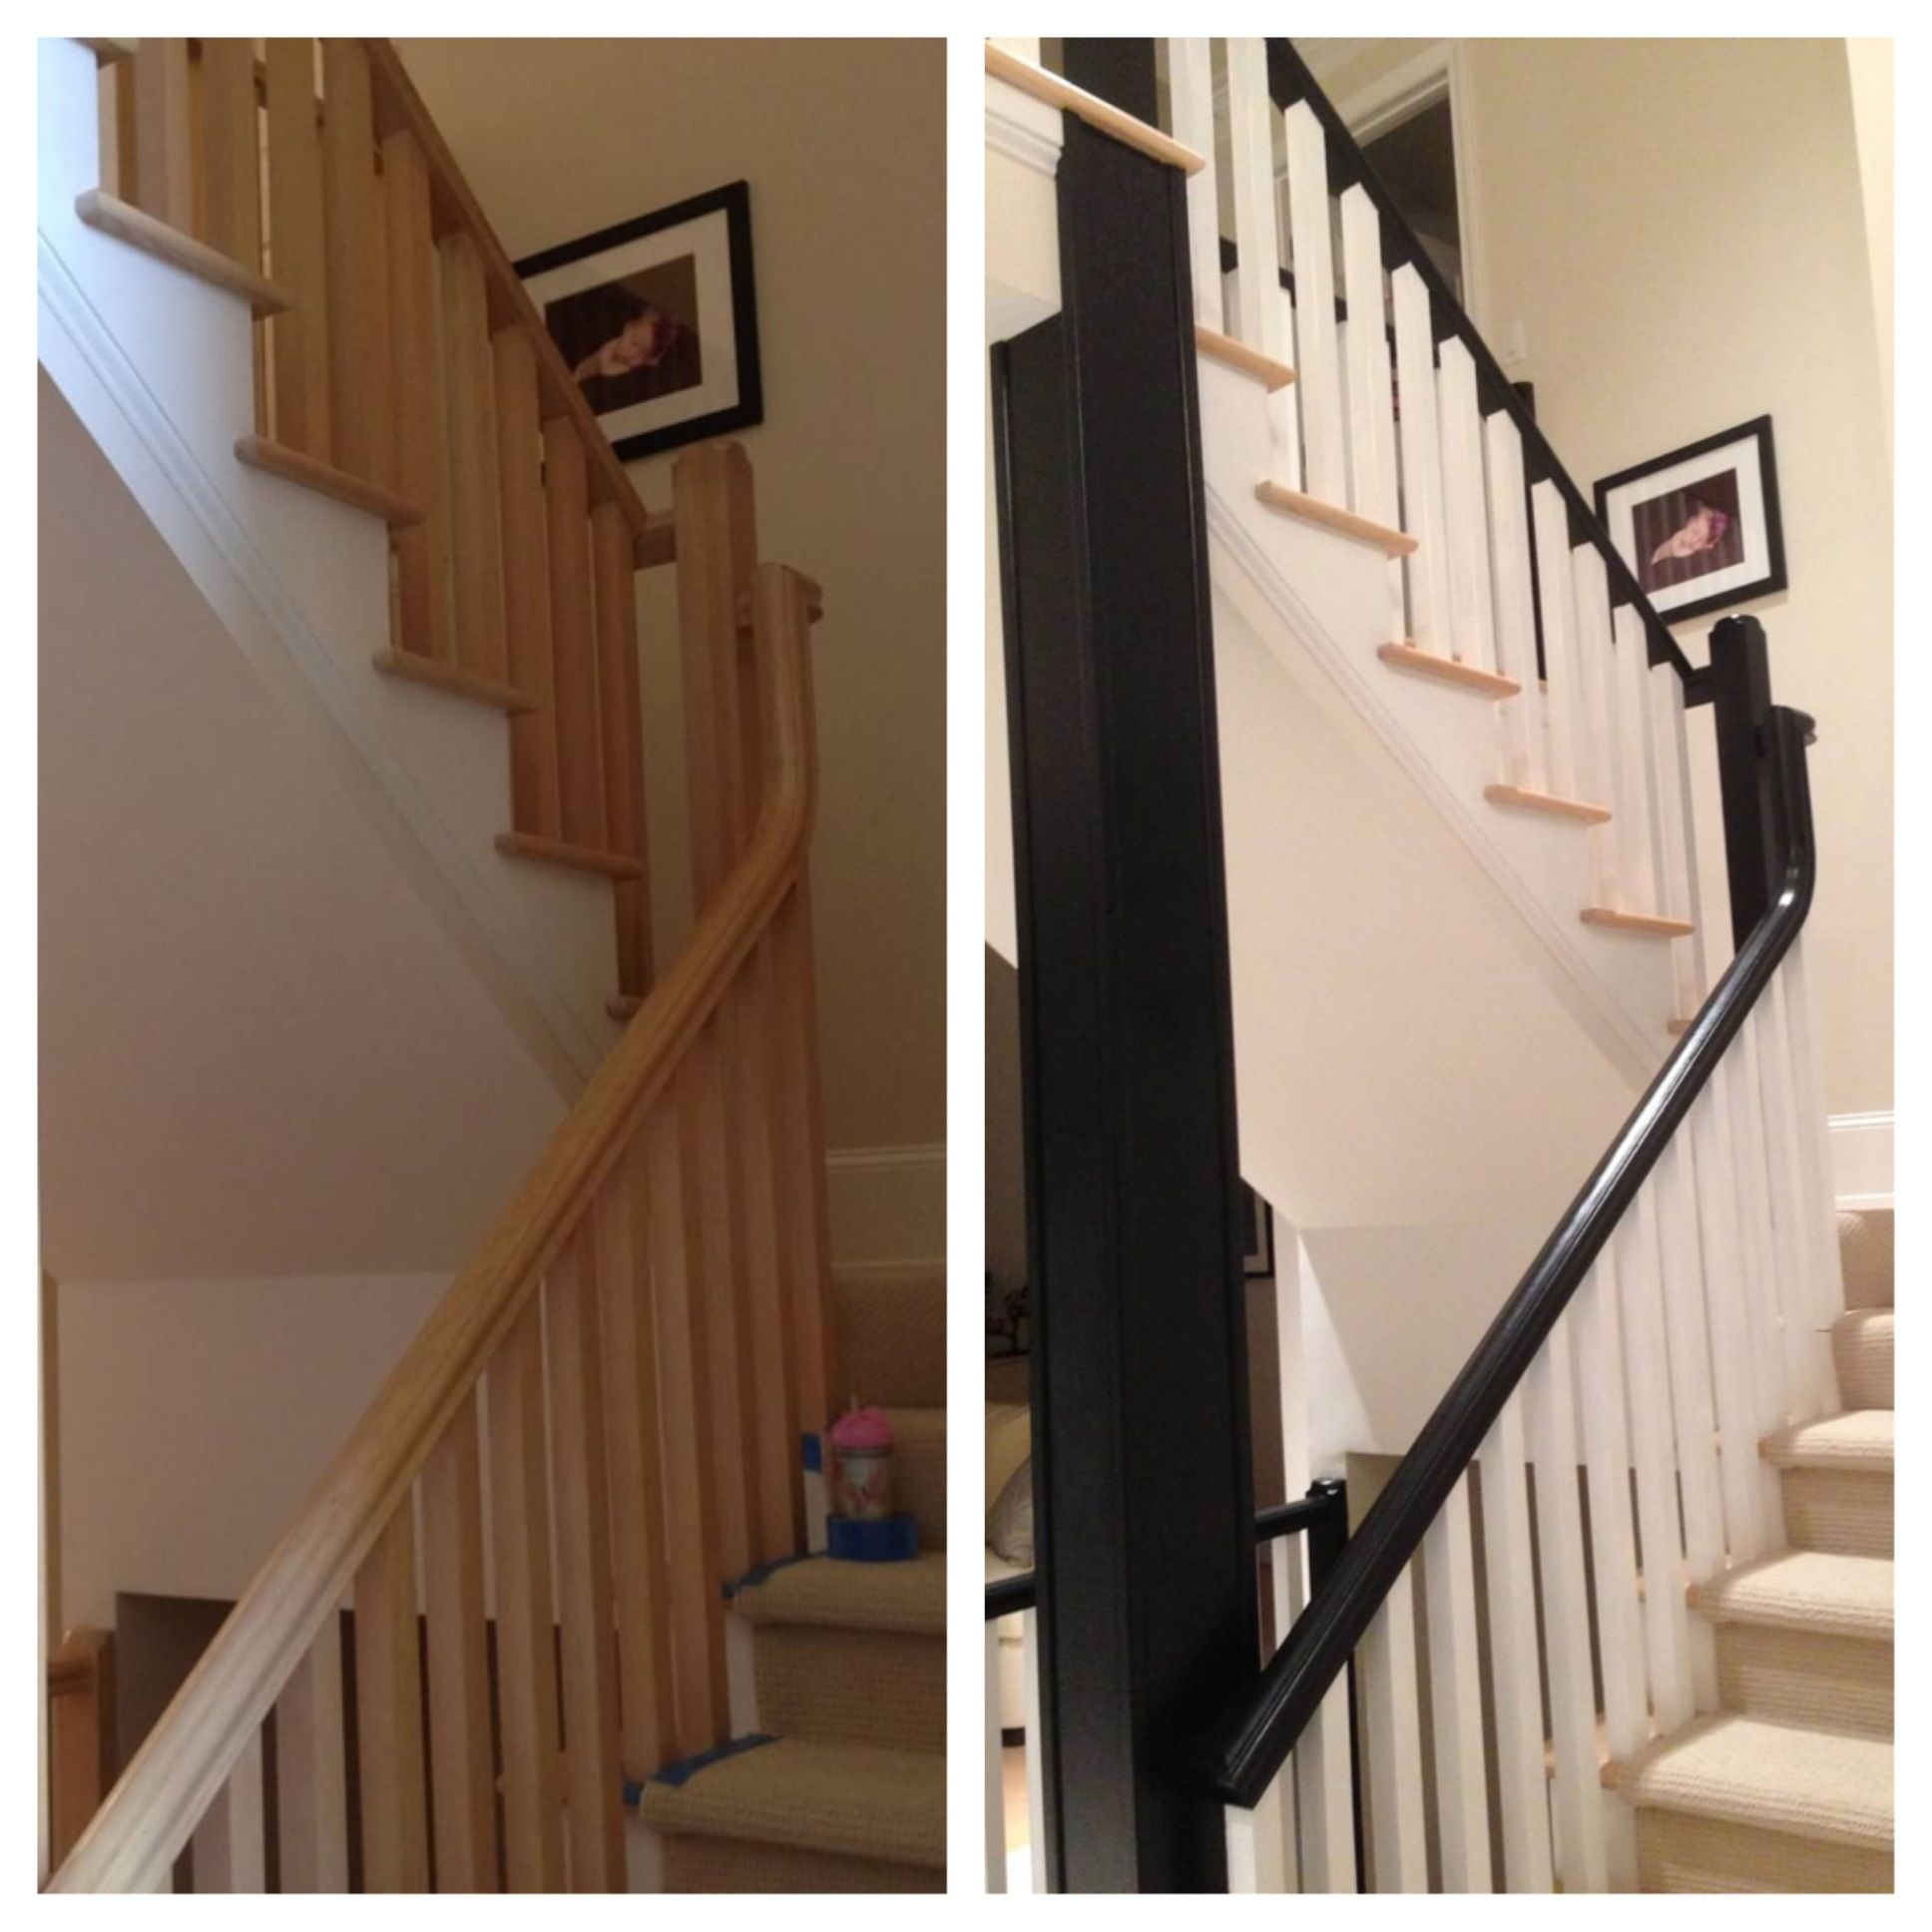 Before And After Painted Banister Painted Stairs Home Projects Banisters